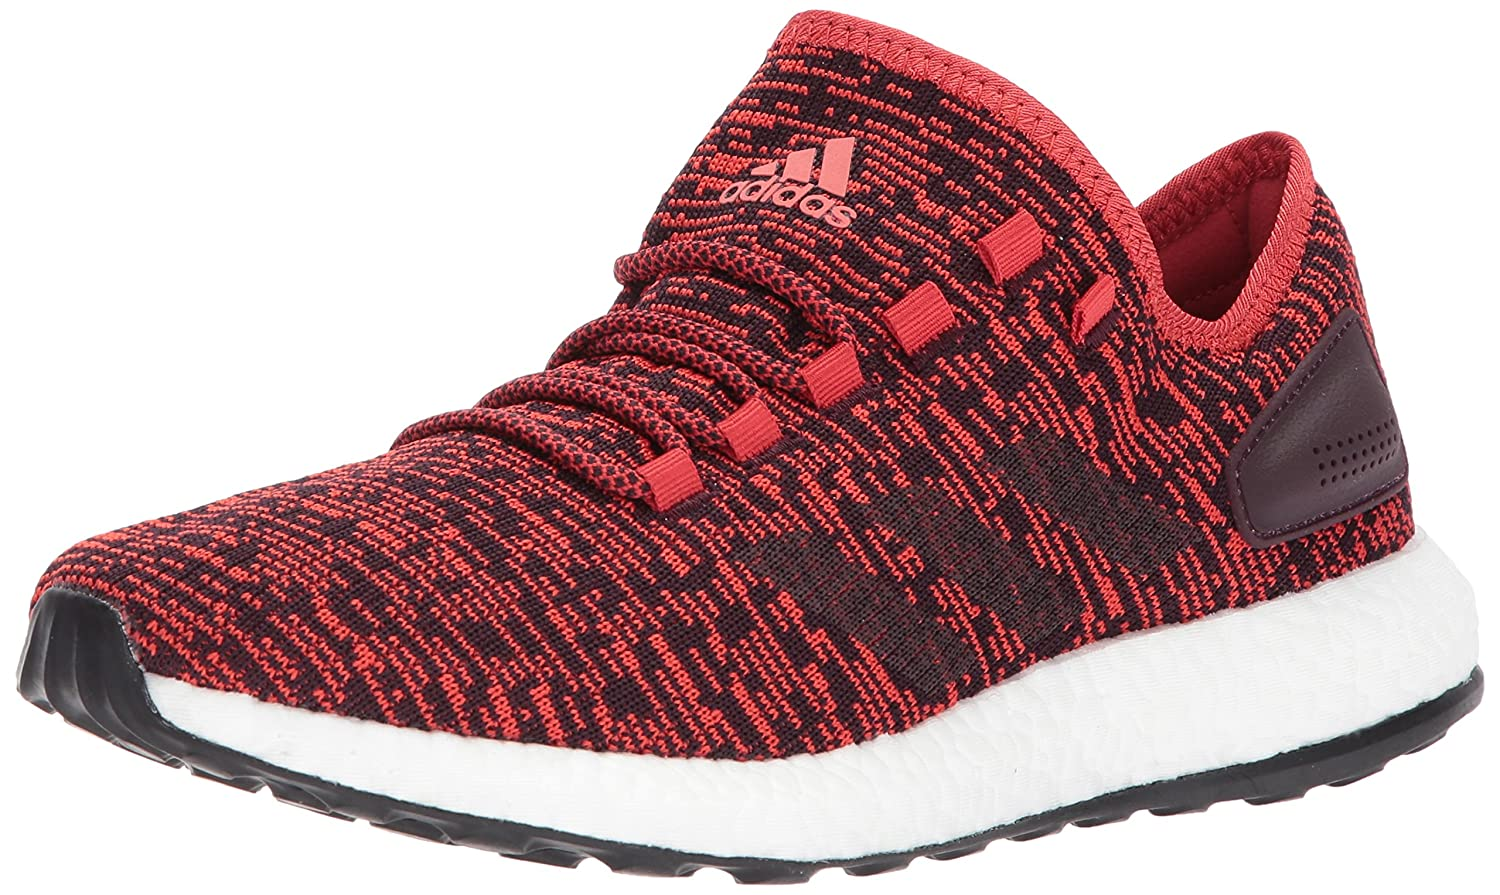 adidas Performance Men's Pureboost Running Shoe B01NALQIHT 12 D(M) US|Tactile Red/Dark Burgundy/Black